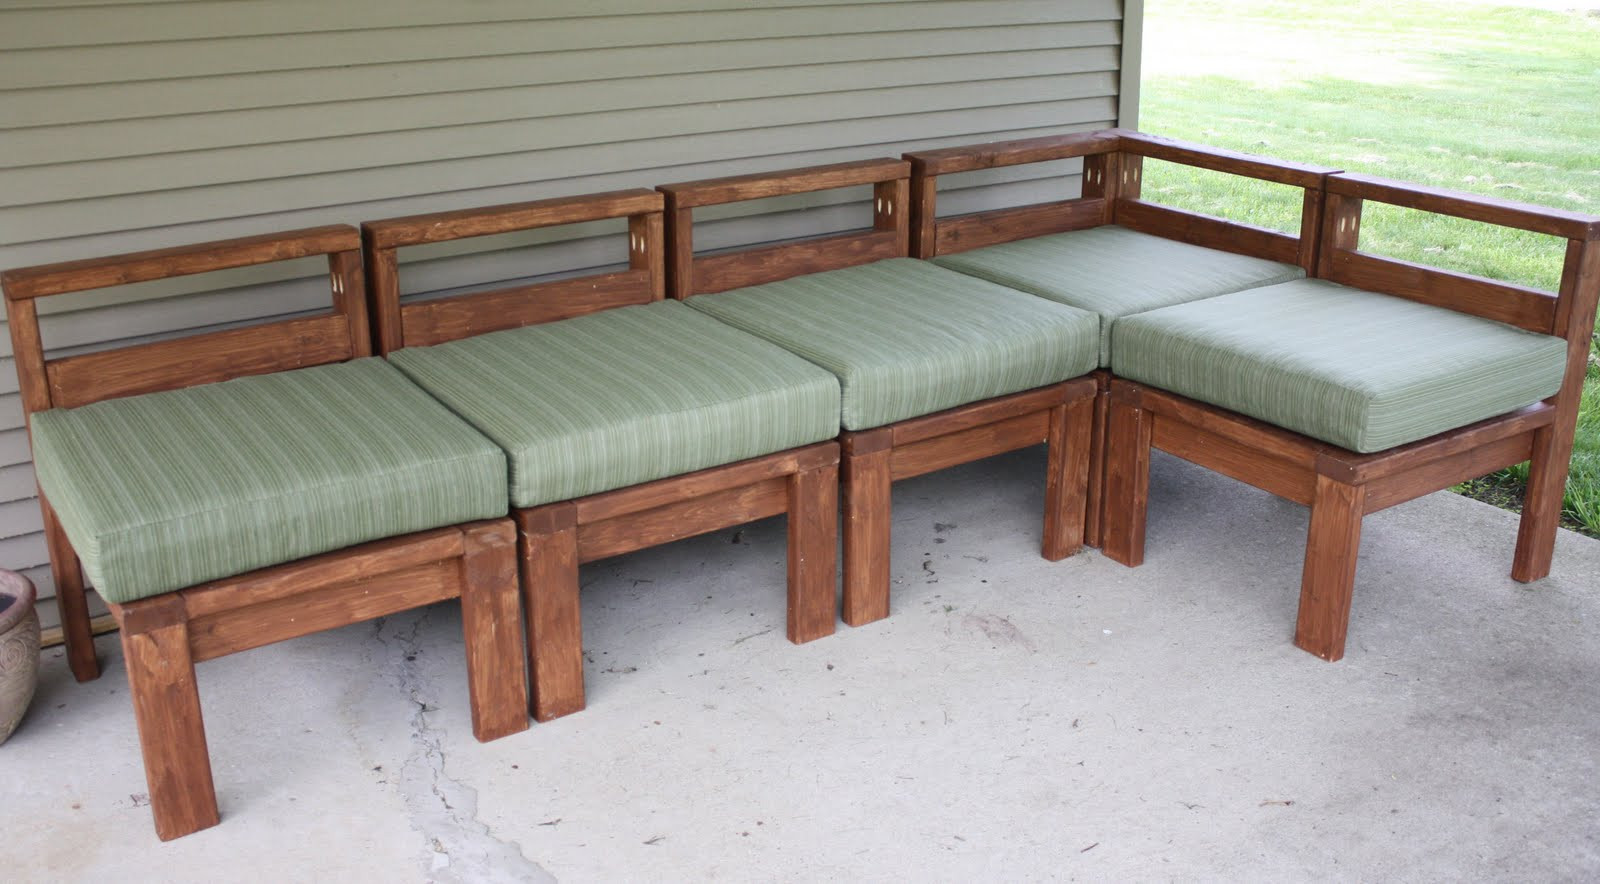 Best ideas about Outdoor Furniture DIY . Save or Pin More Like Home 2x4 Outdoor Sectional Now.